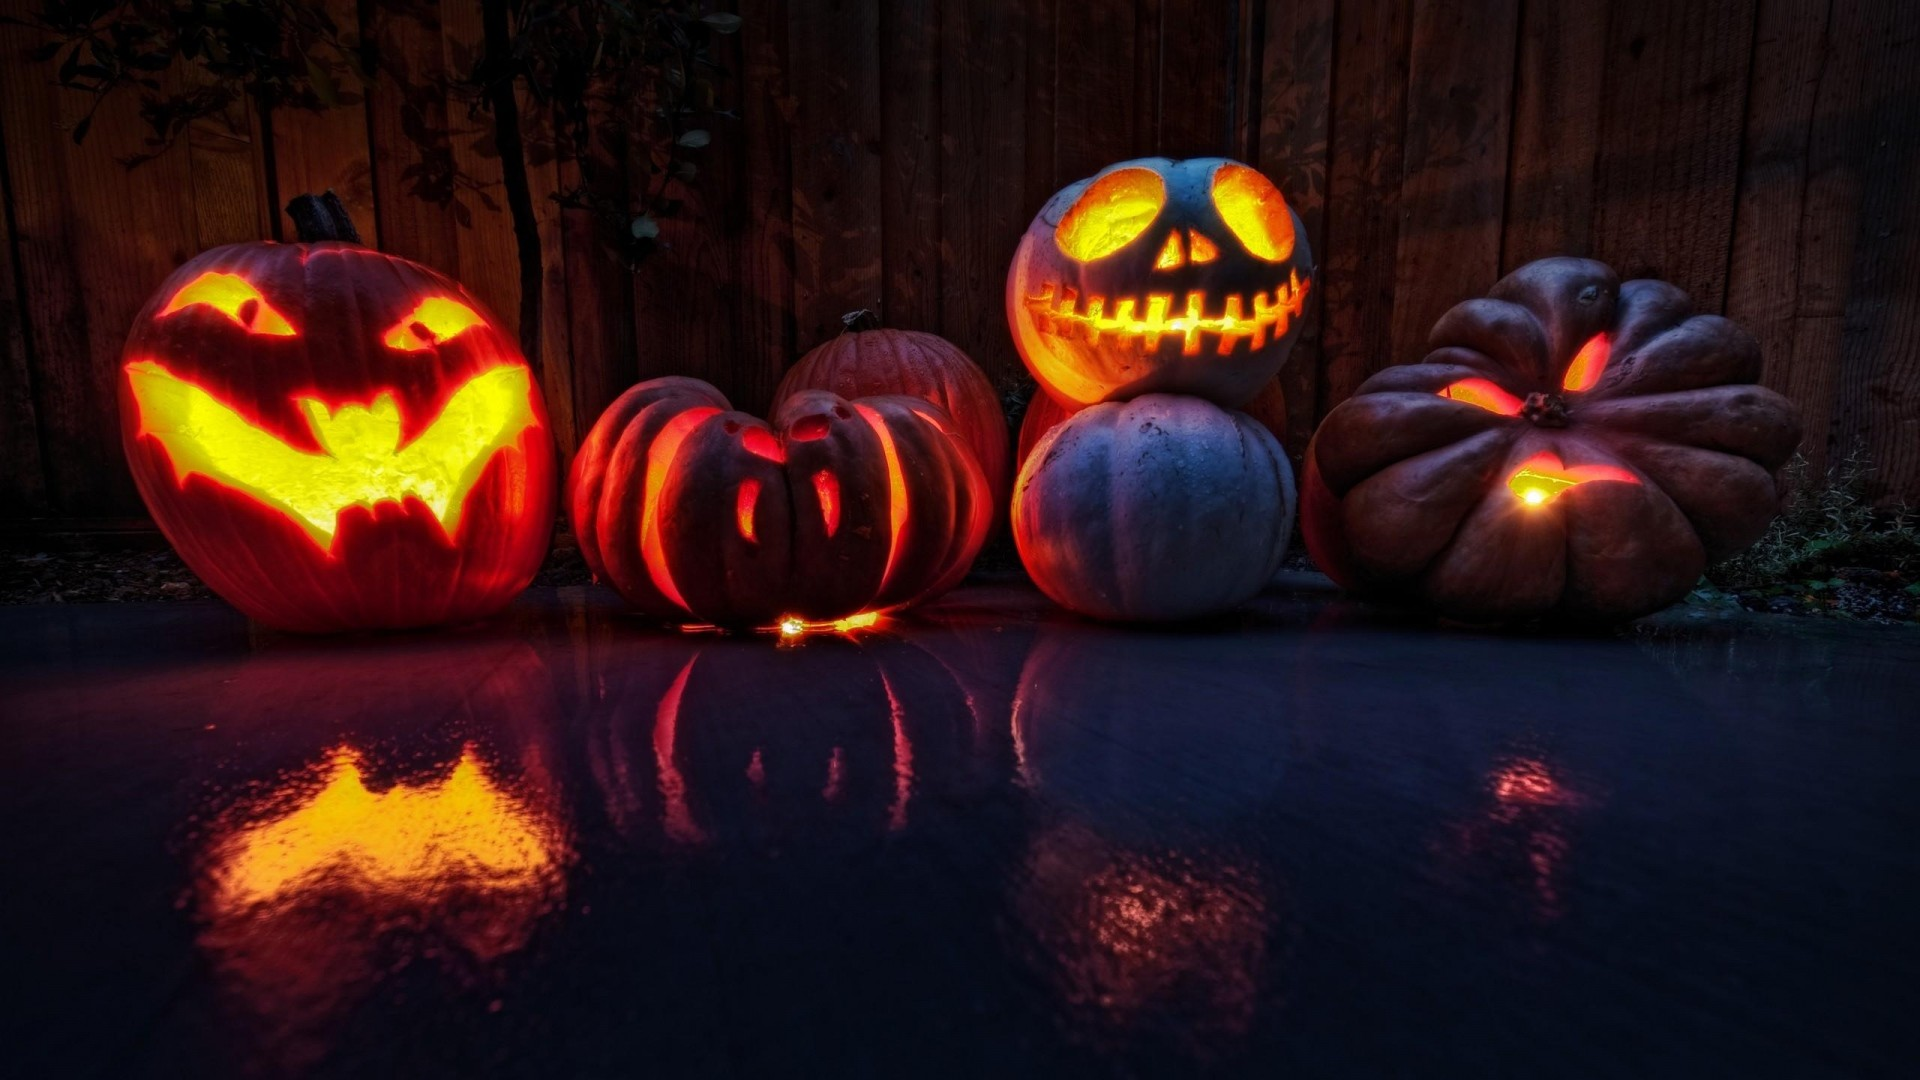 Halloween Pumpkin Wallpaper Hd.Hd Pumpkin Wallpapers 58 Background Pictures